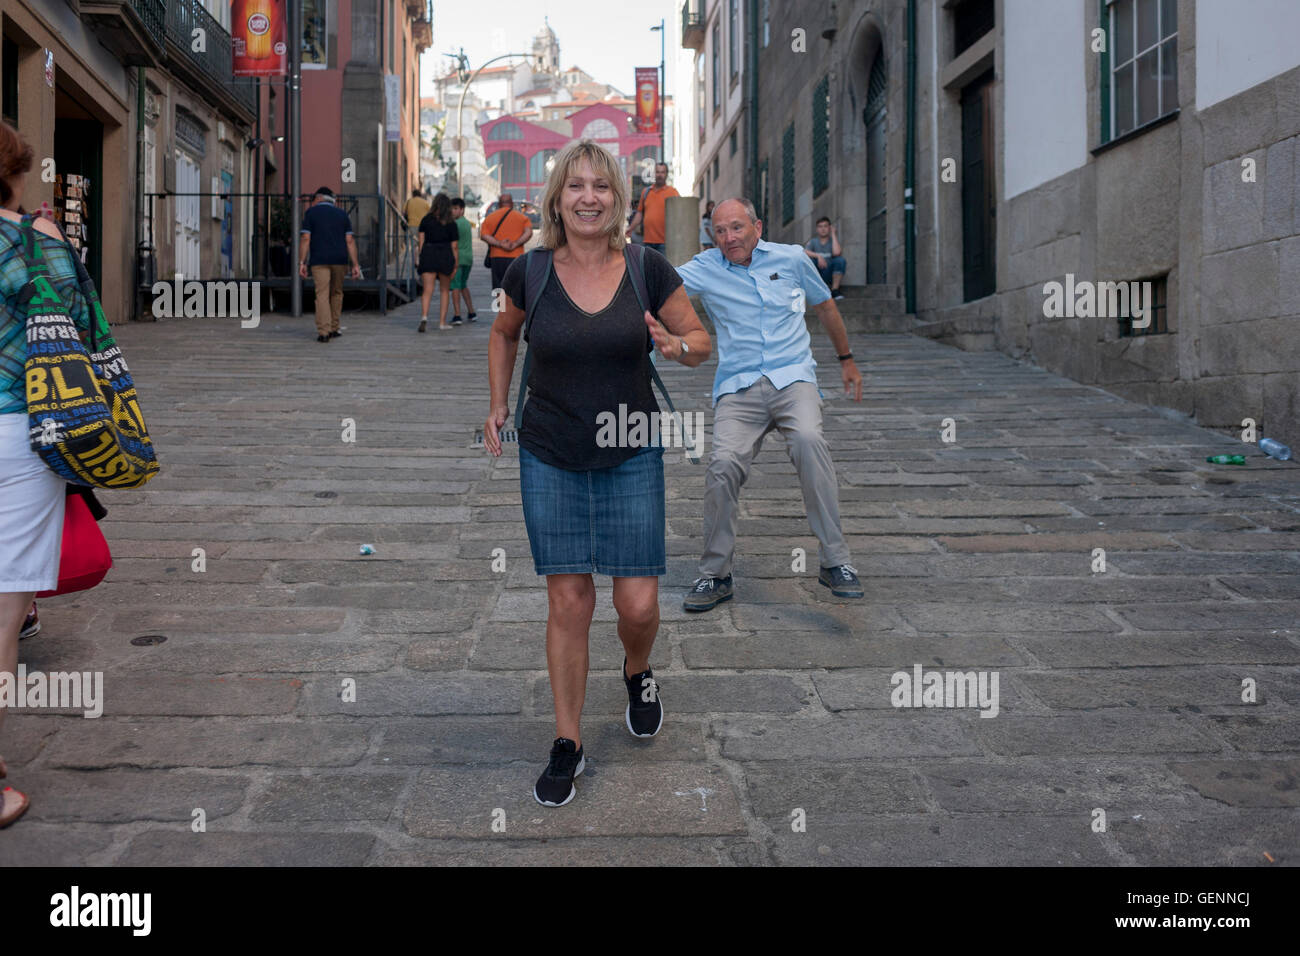 Middle-aged couple mess about with a backwards running race on a hill, while on holiday in Porto, Portugal: A sequence - Stock Image